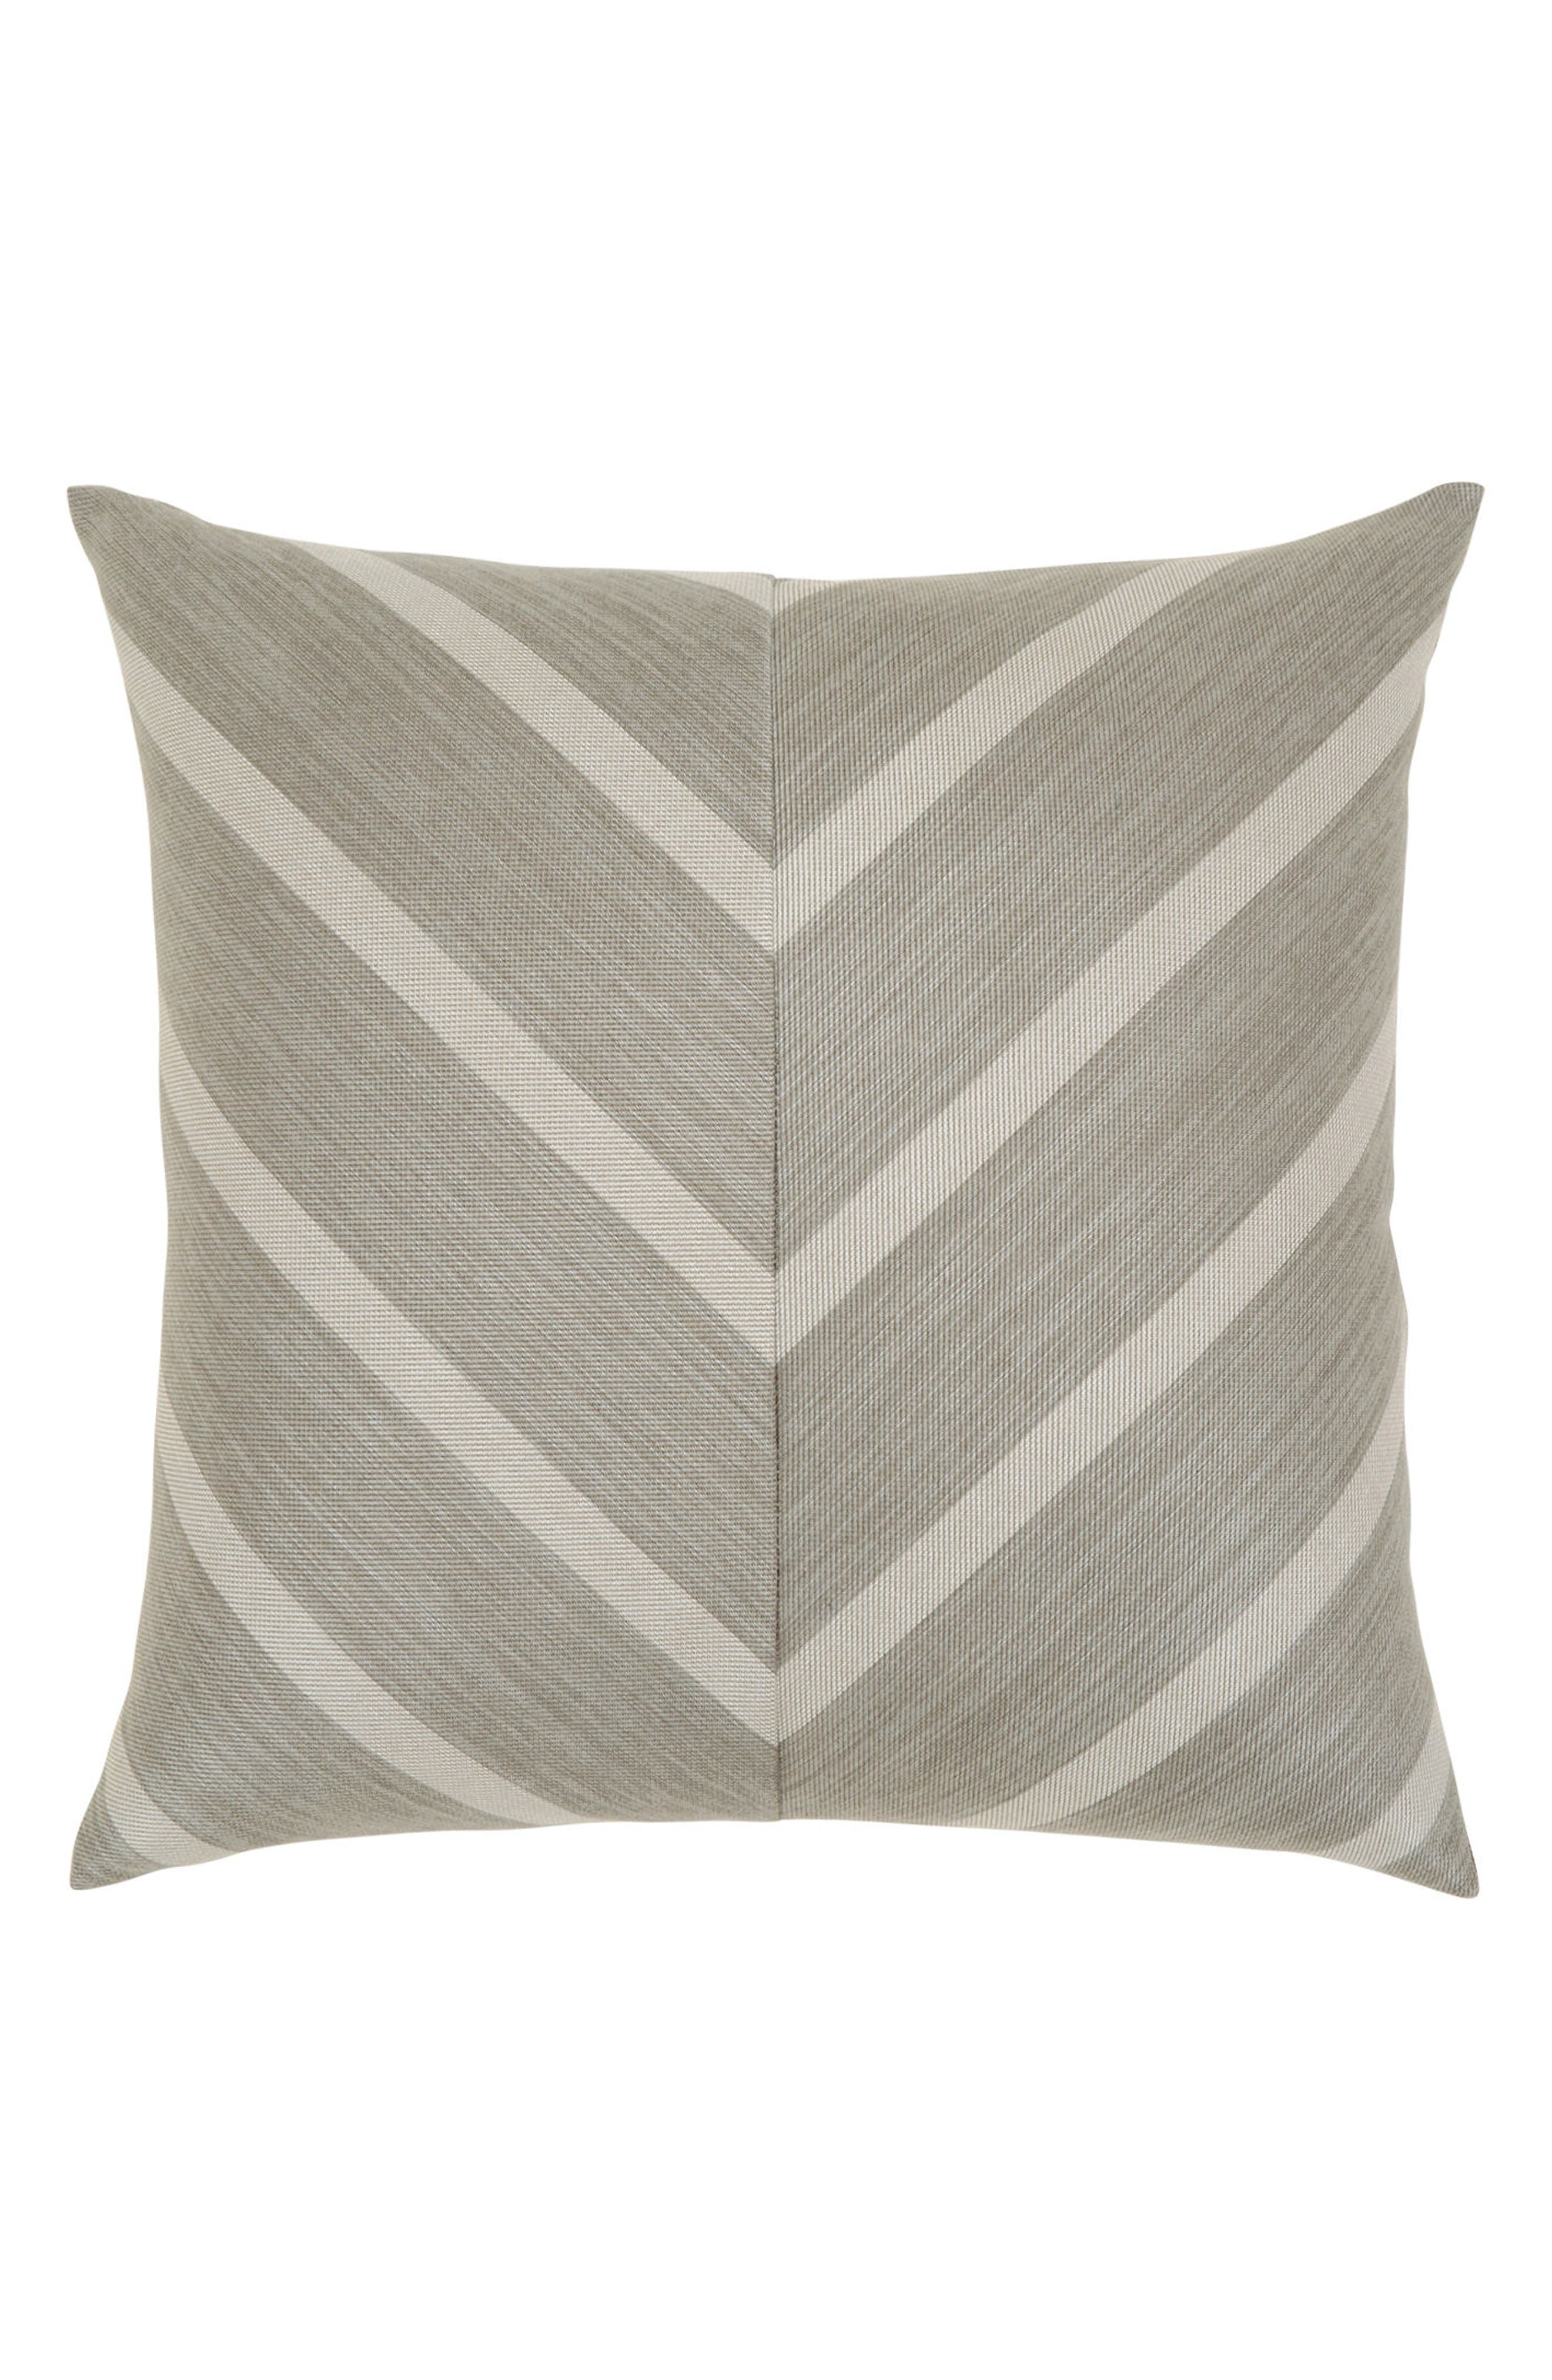 Sparkle Chevron Indoor/Outdoor Accent Pillow,                             Main thumbnail 1, color,                             GREY